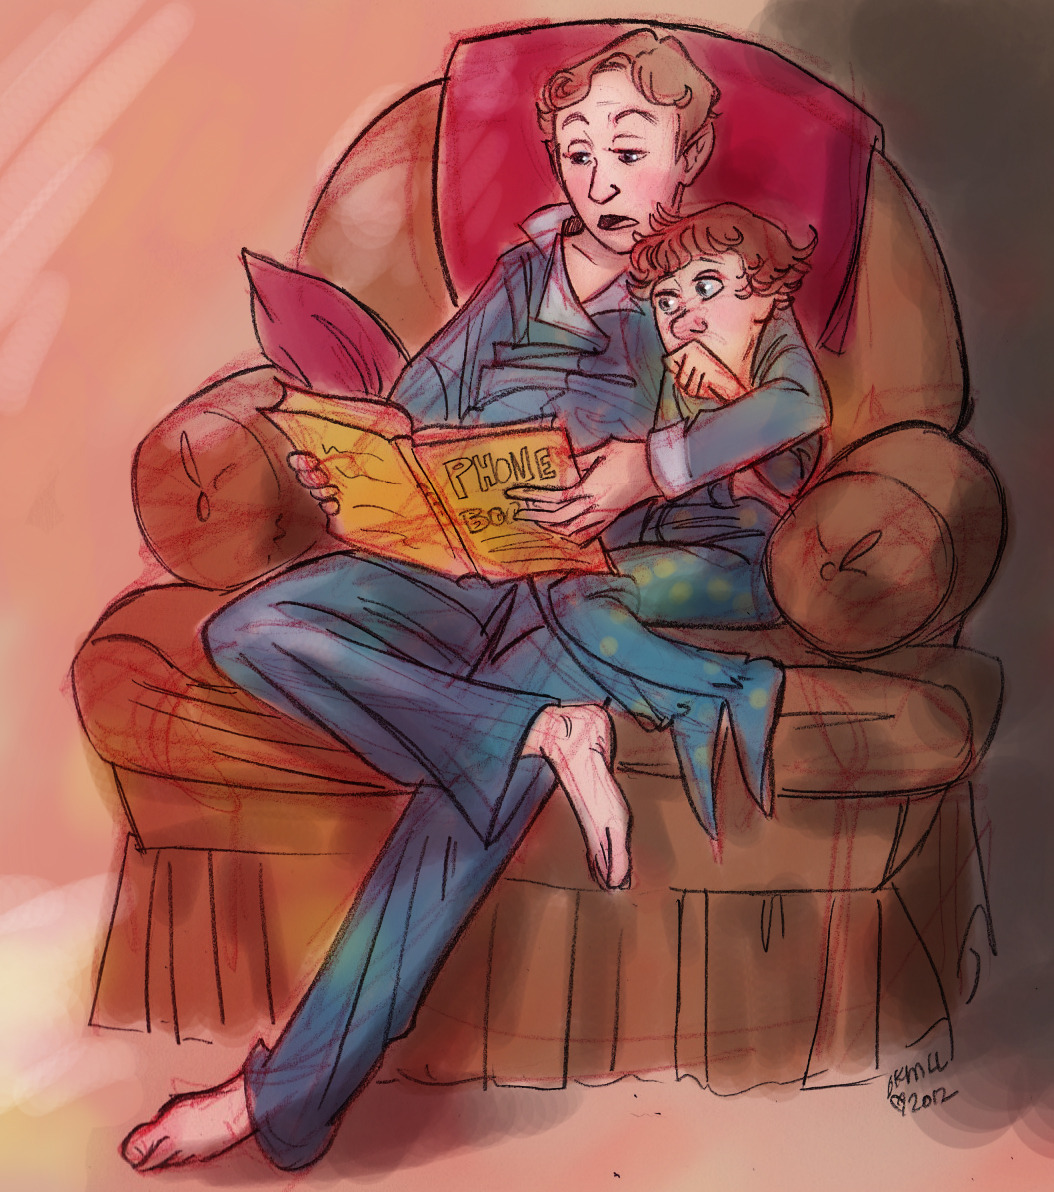 geniusbee:  livielightyear:  Here's a bedtime story for you: Mycroft is reading Sherlock the Phone book. He get's Sherlock to pick a name. Mycroft will tell Sherlock a story about them, based on what he can learn from their name, members of their household, and where they live. He thinks he's just making it up, but one day, Sherlock decides to call one of the people Mycroft told him about. Mycroft was right down to every detail.  And that's when both boys got serious about Deducing.  The end.  Mycroft is supposed to be around 14, while Sherlock around 7. How I drew their ages don't quite match up… but that's the idea. I imagine Mycroft is trying to get Sherlock to stop sucking his thumb, but he gives up after a while.   God I love this.